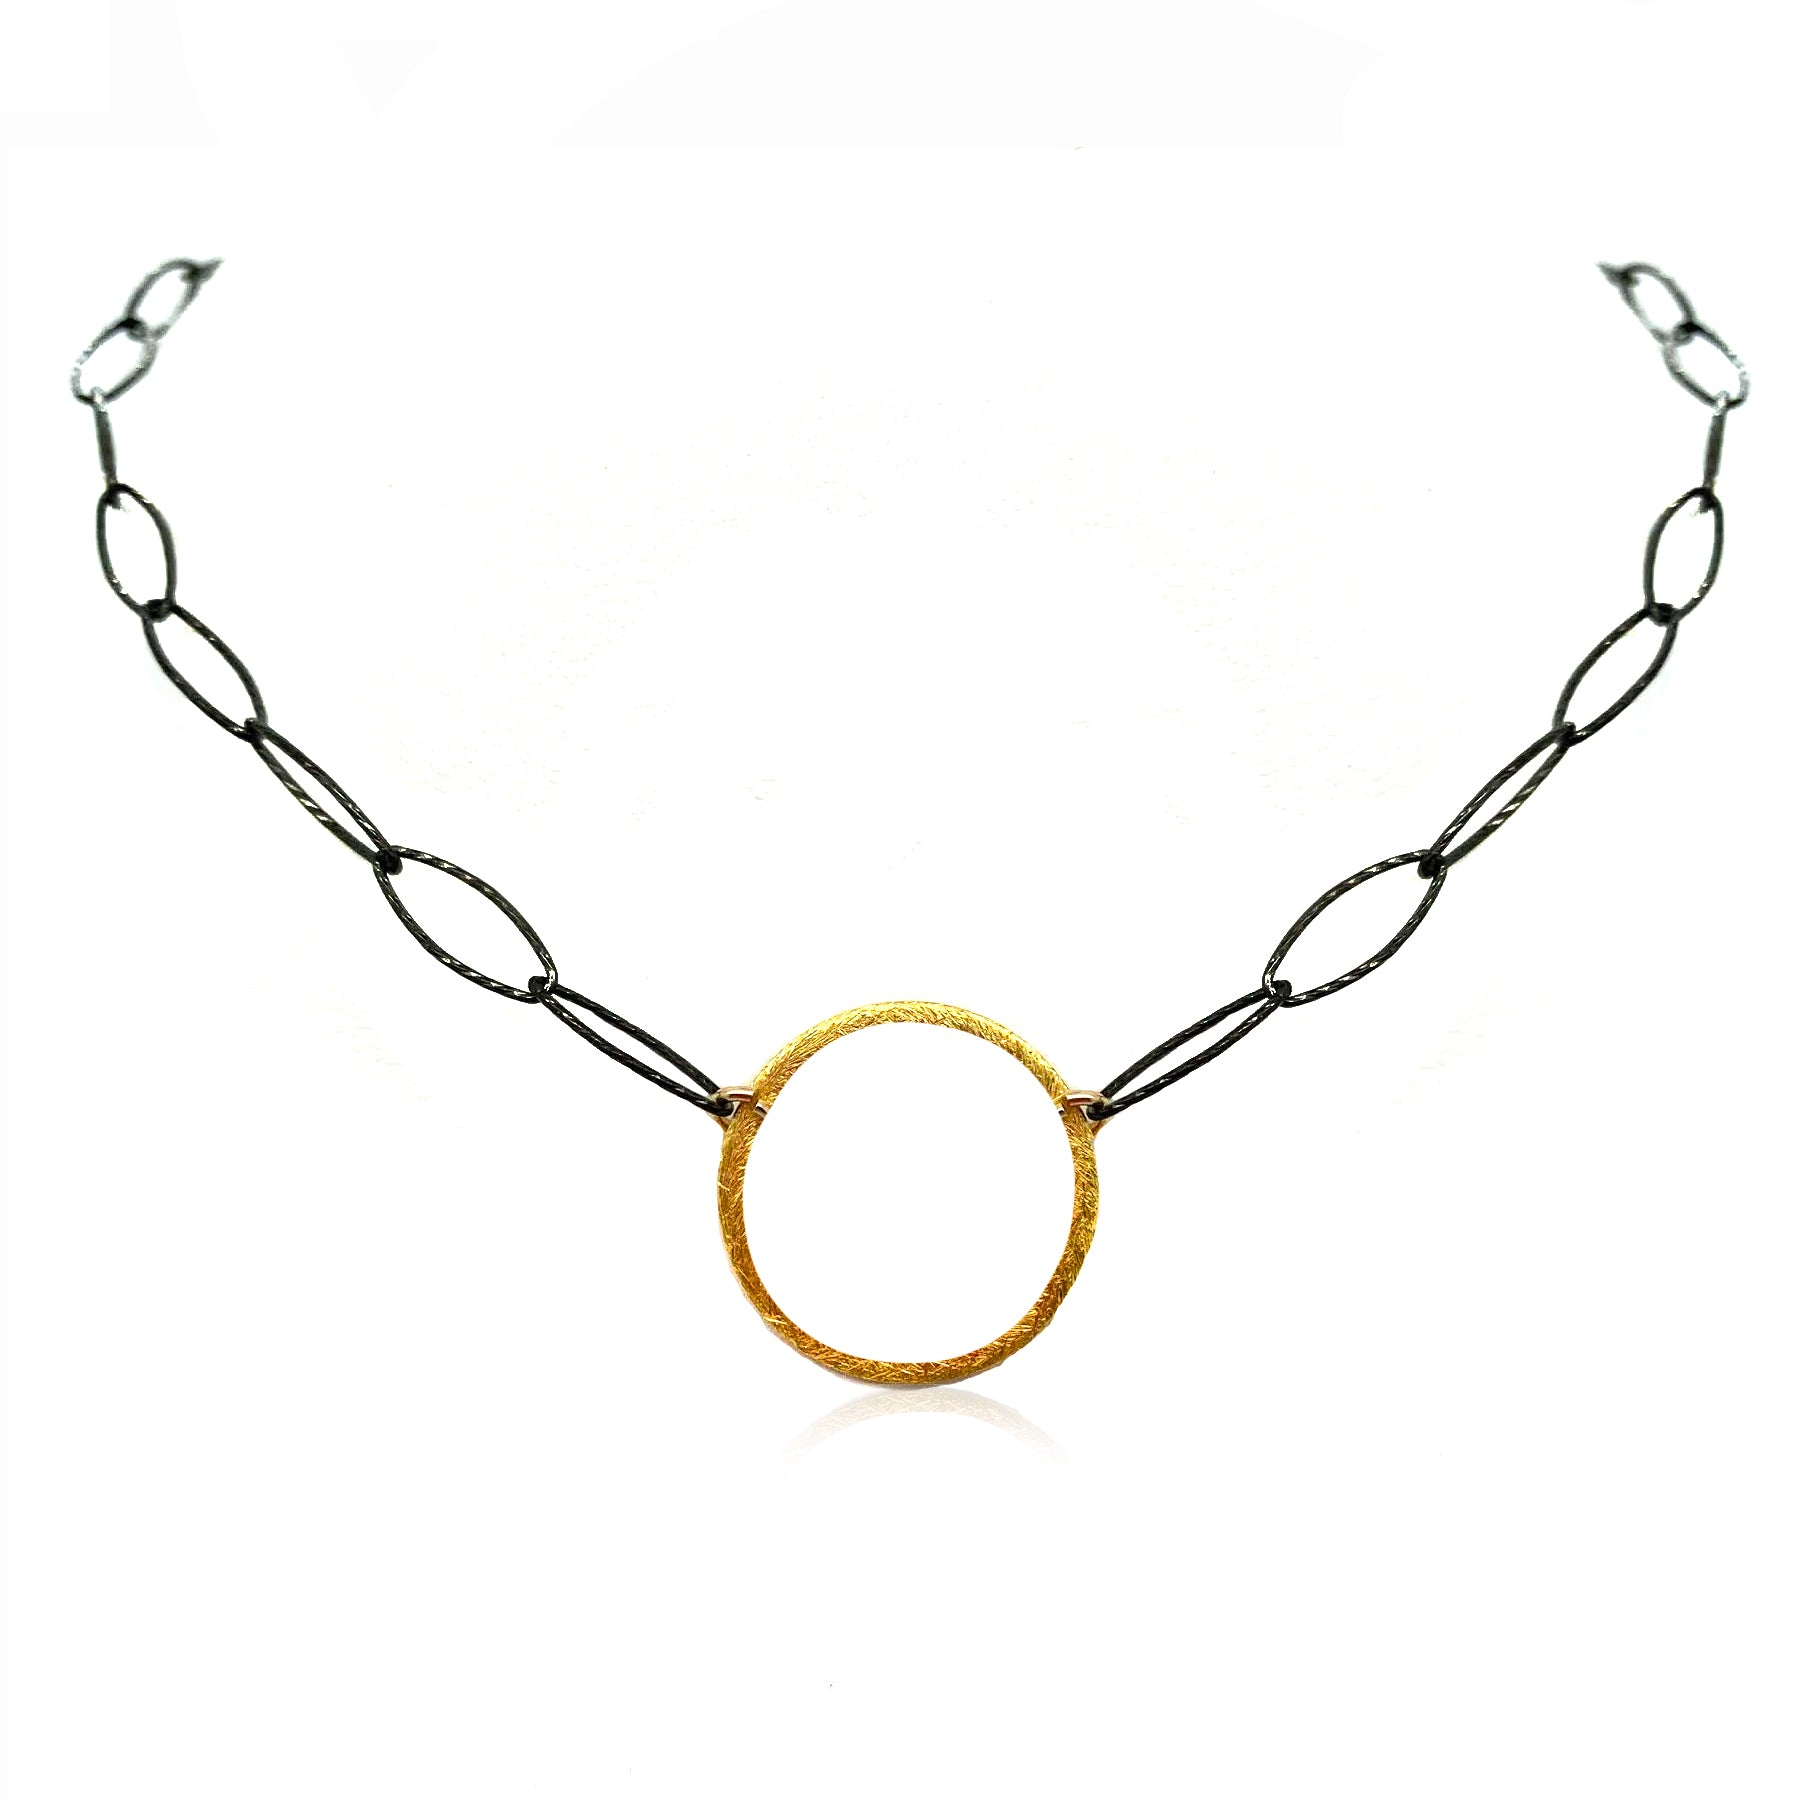 Mixed Metal Orbit Necklace